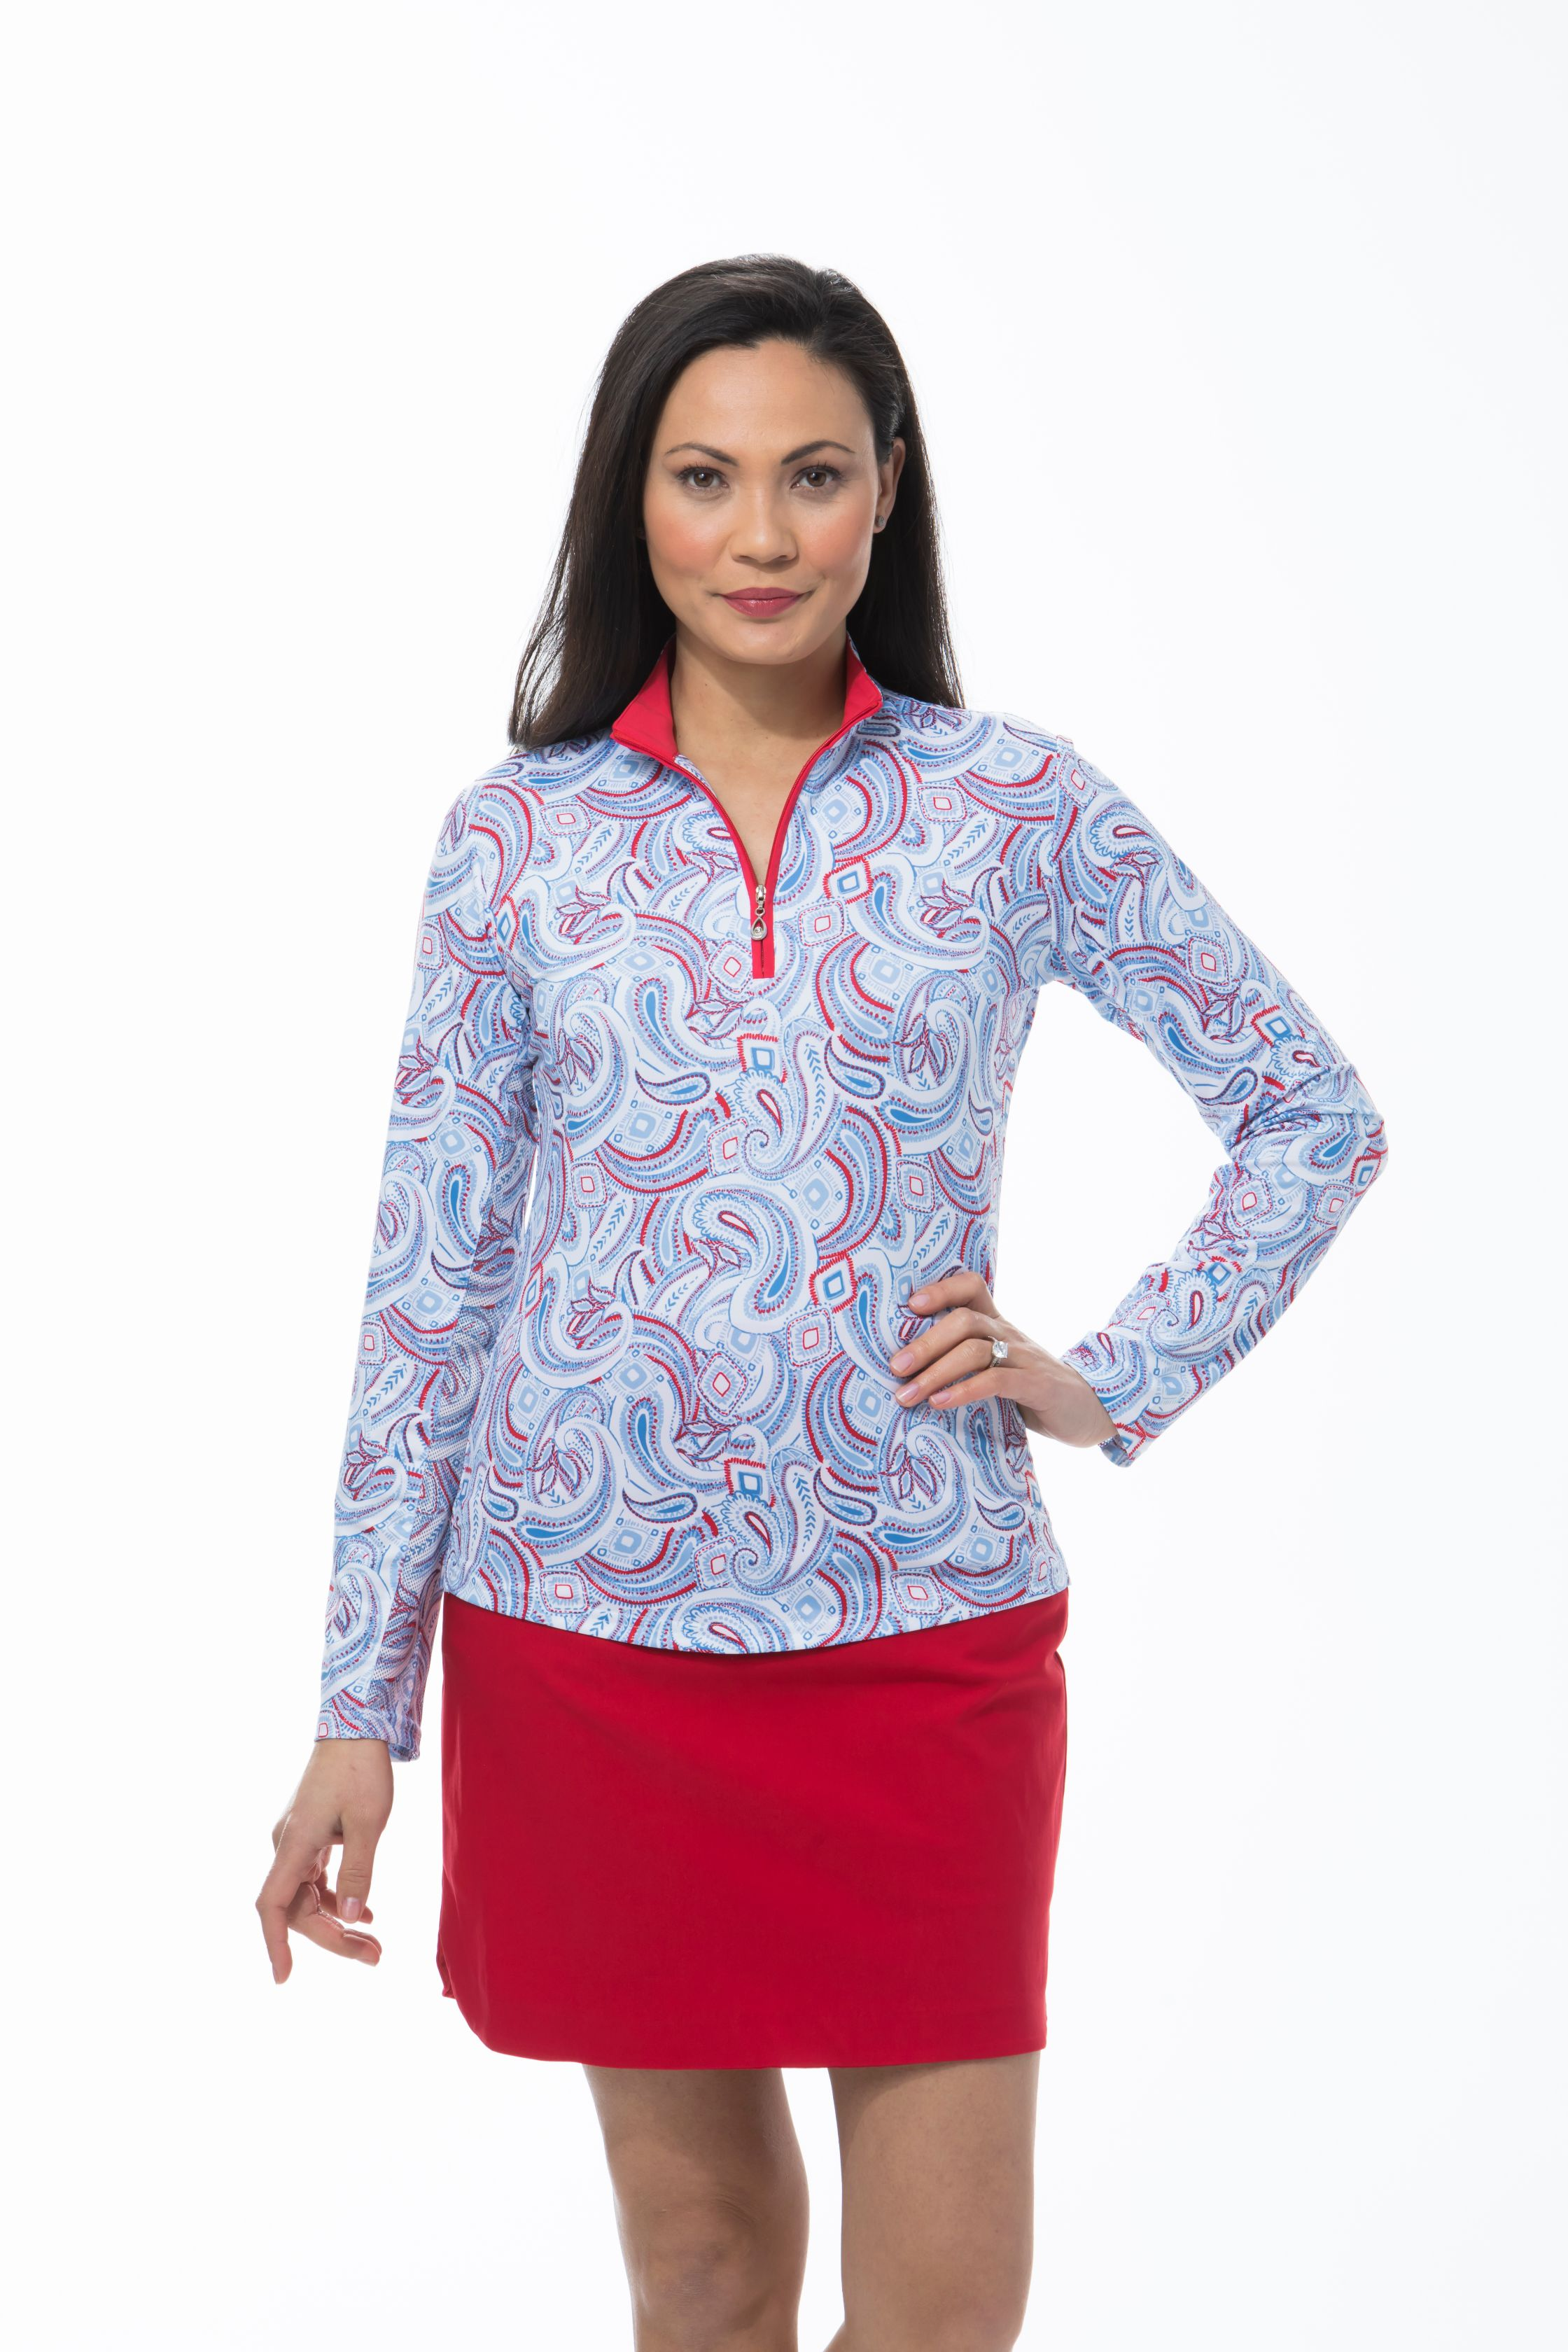 SANSOLEIL SOLCOOL ZIP MOCK POP PAISLEY. WHITE BLUE RED. 900463